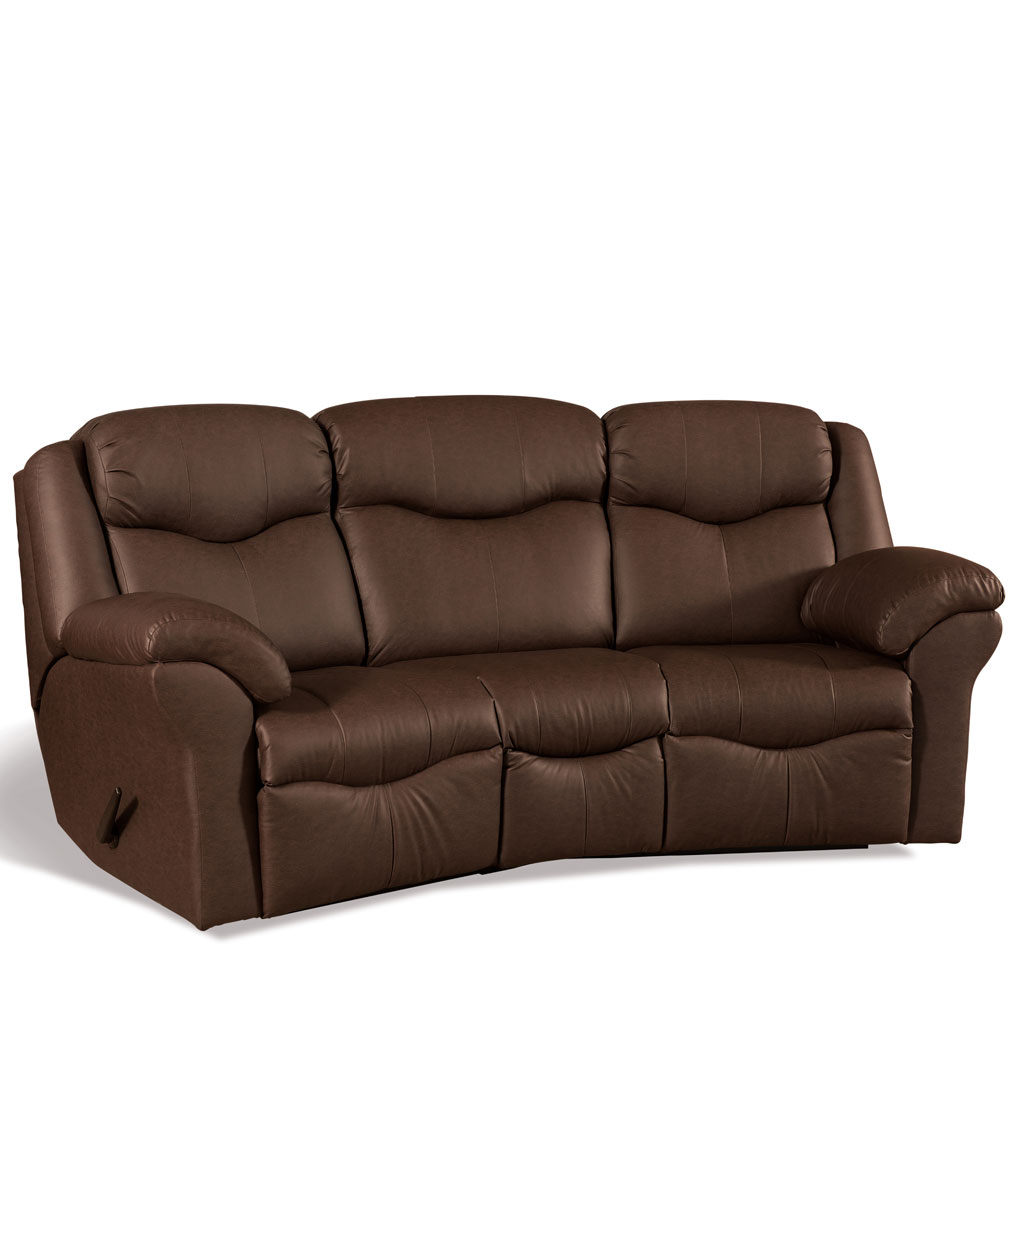 comfort suite family style sofa amish direct furniture